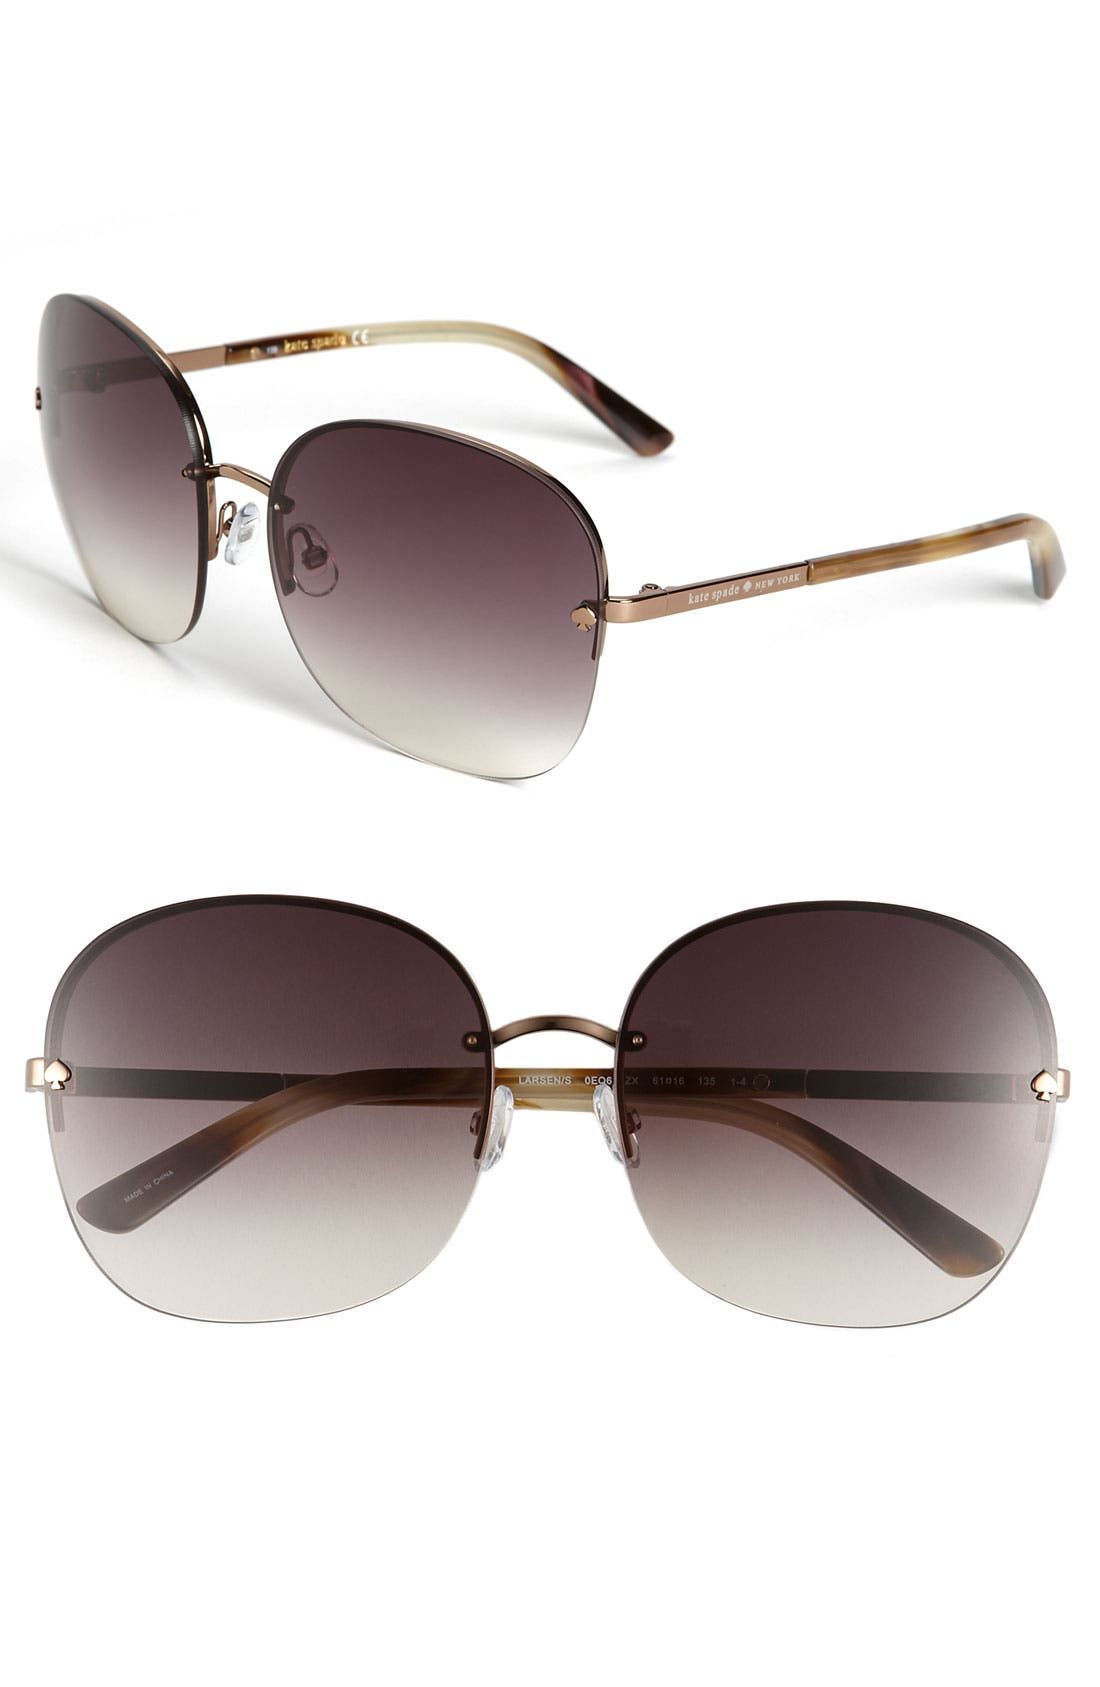 Alternate Image 1 Selected - kate spade new york 'larsen' rimless sunglasses